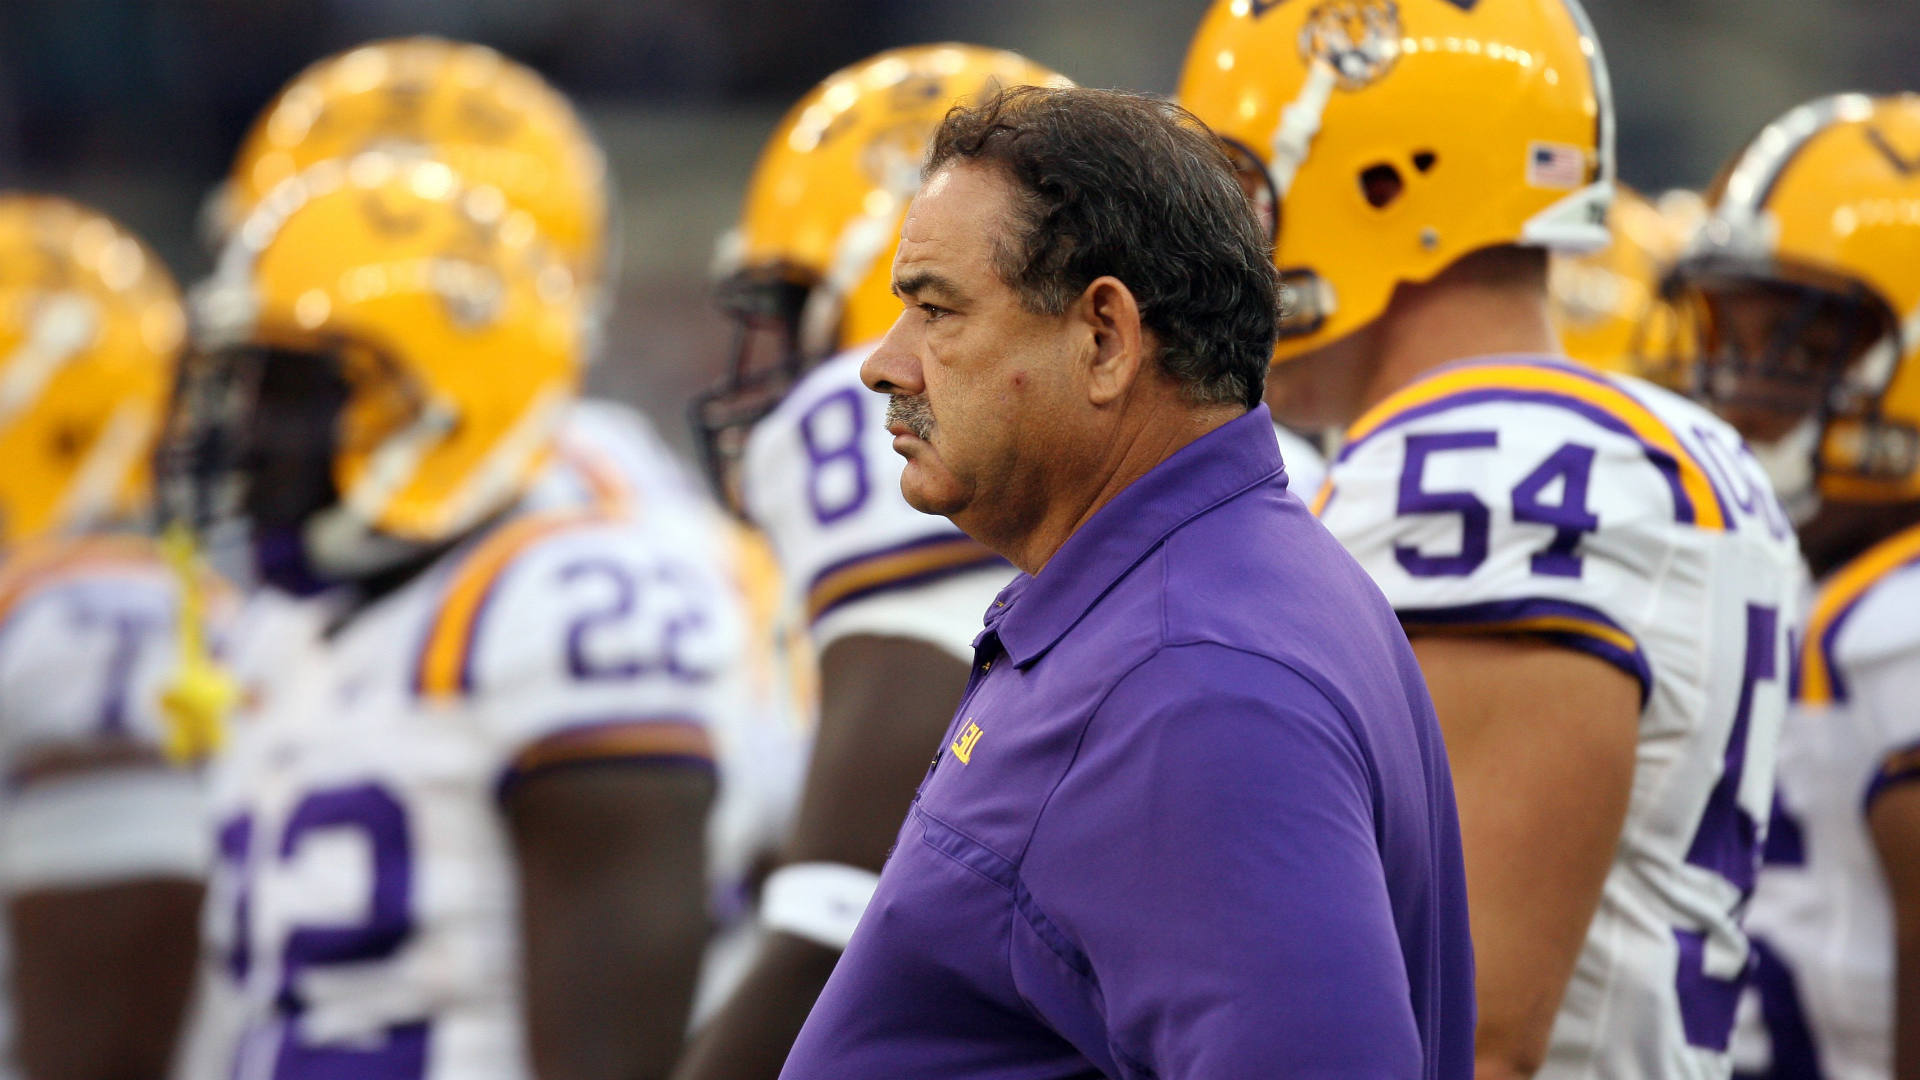 John-Chavis-LSU-ftr-060315-getty